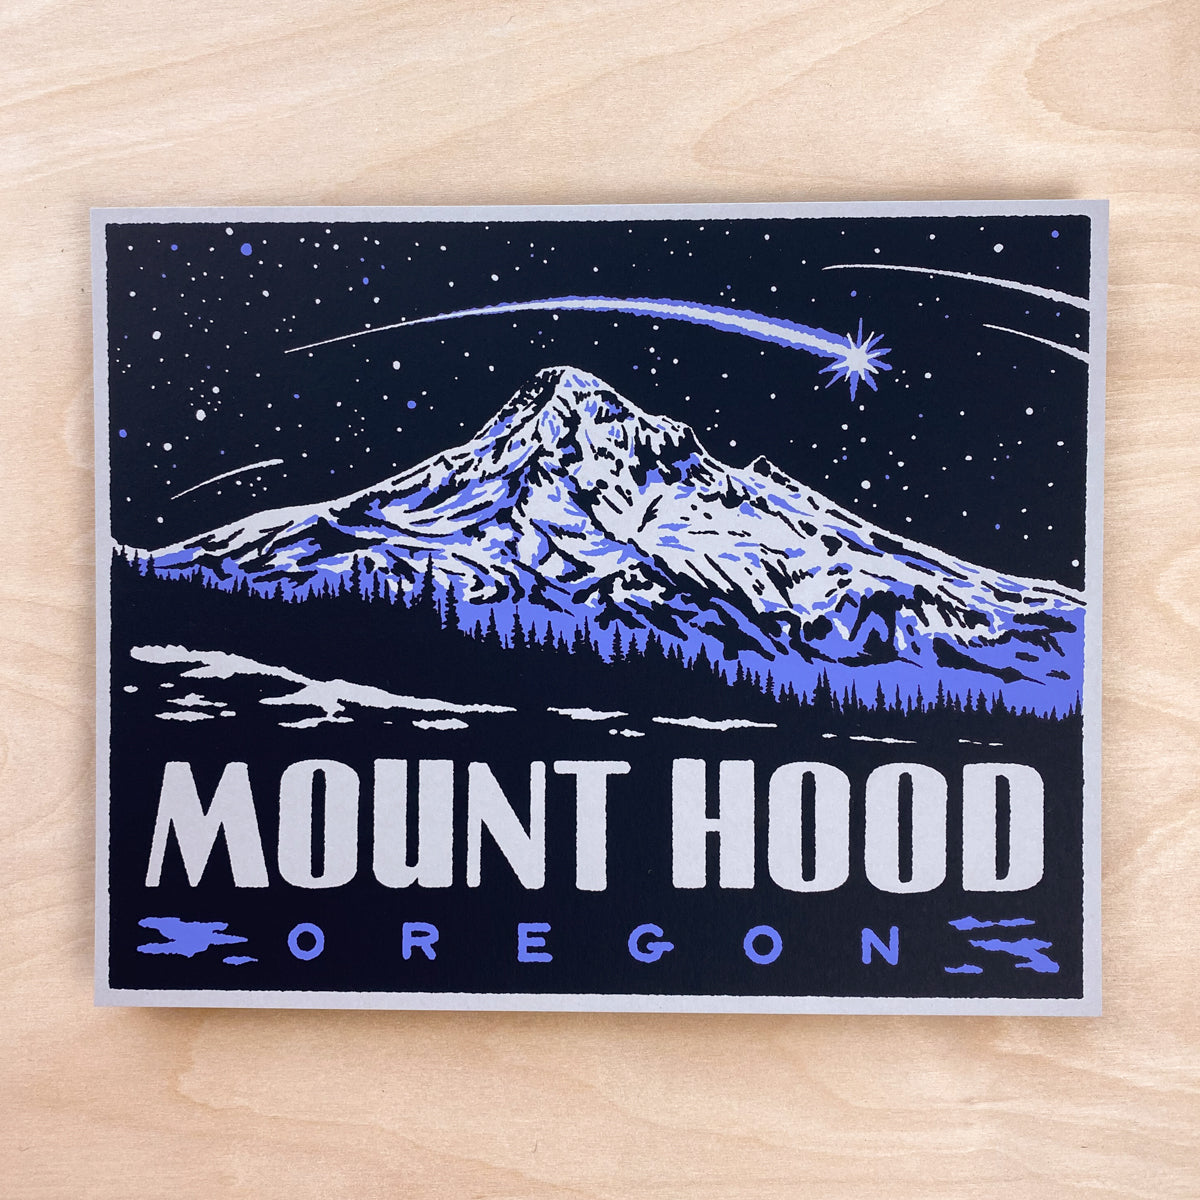 Mount Hood Oregon - Signed 10x8in Print #209